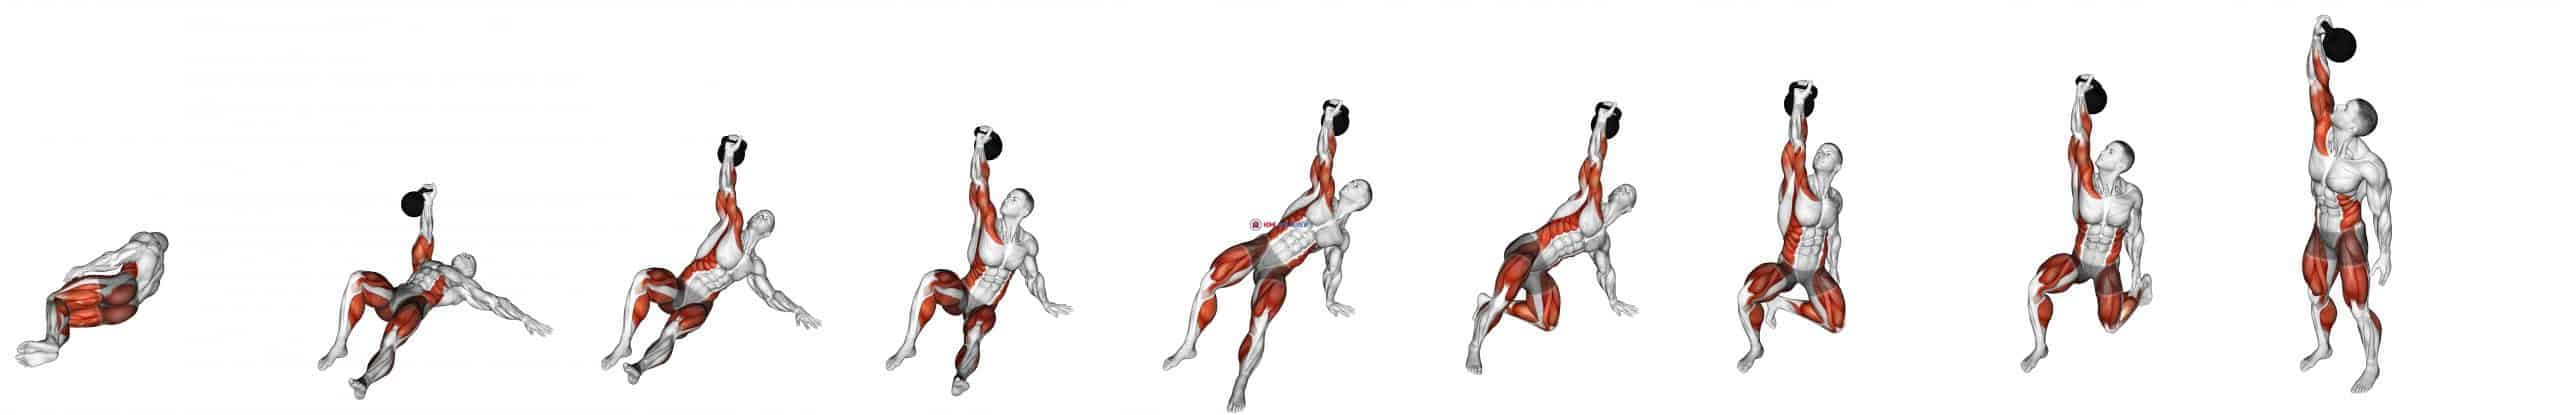 Kettlebell Turkish Get Up (Squat style)